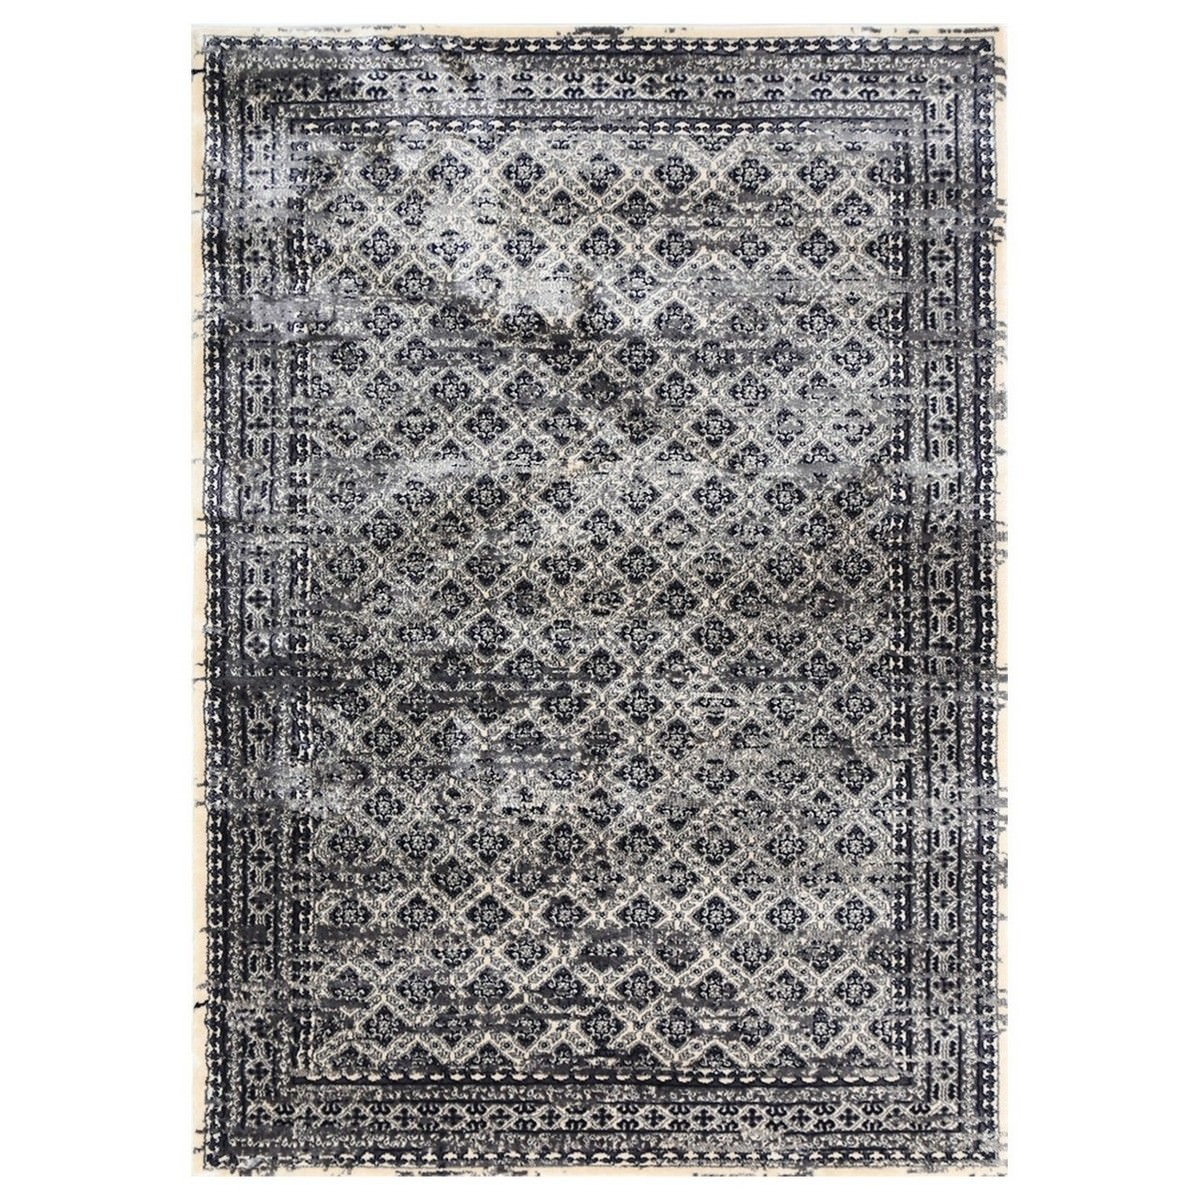 Artifact Hester Distressed Oriental Rug, 240x330cm